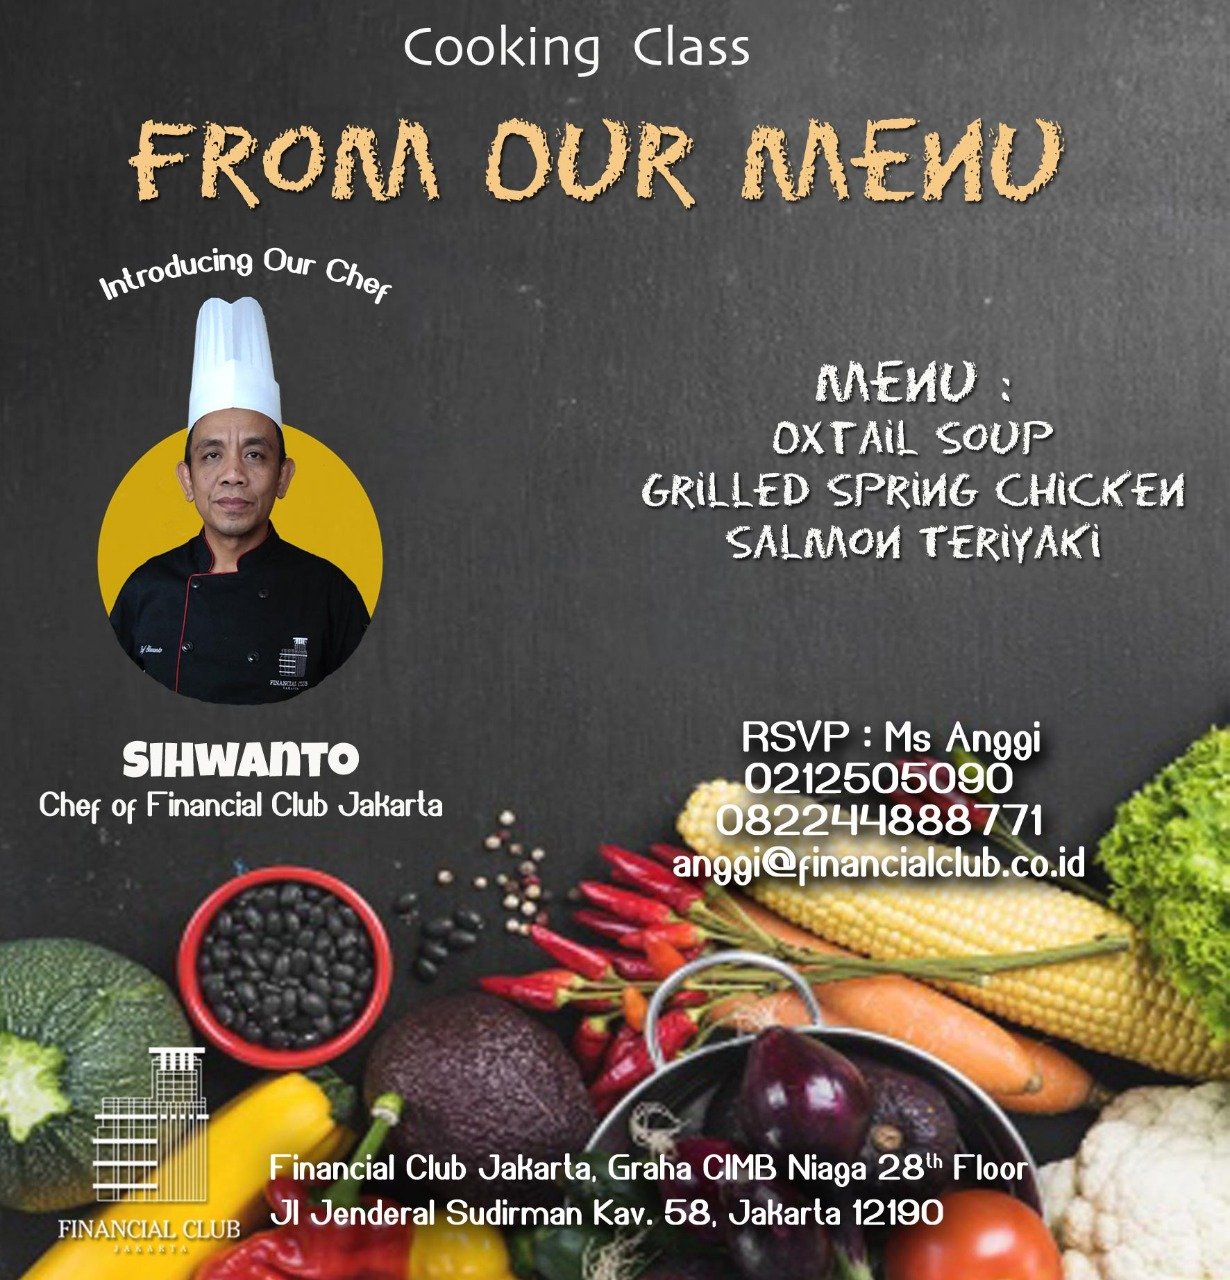 Cooking Class with Chef Sihwanto